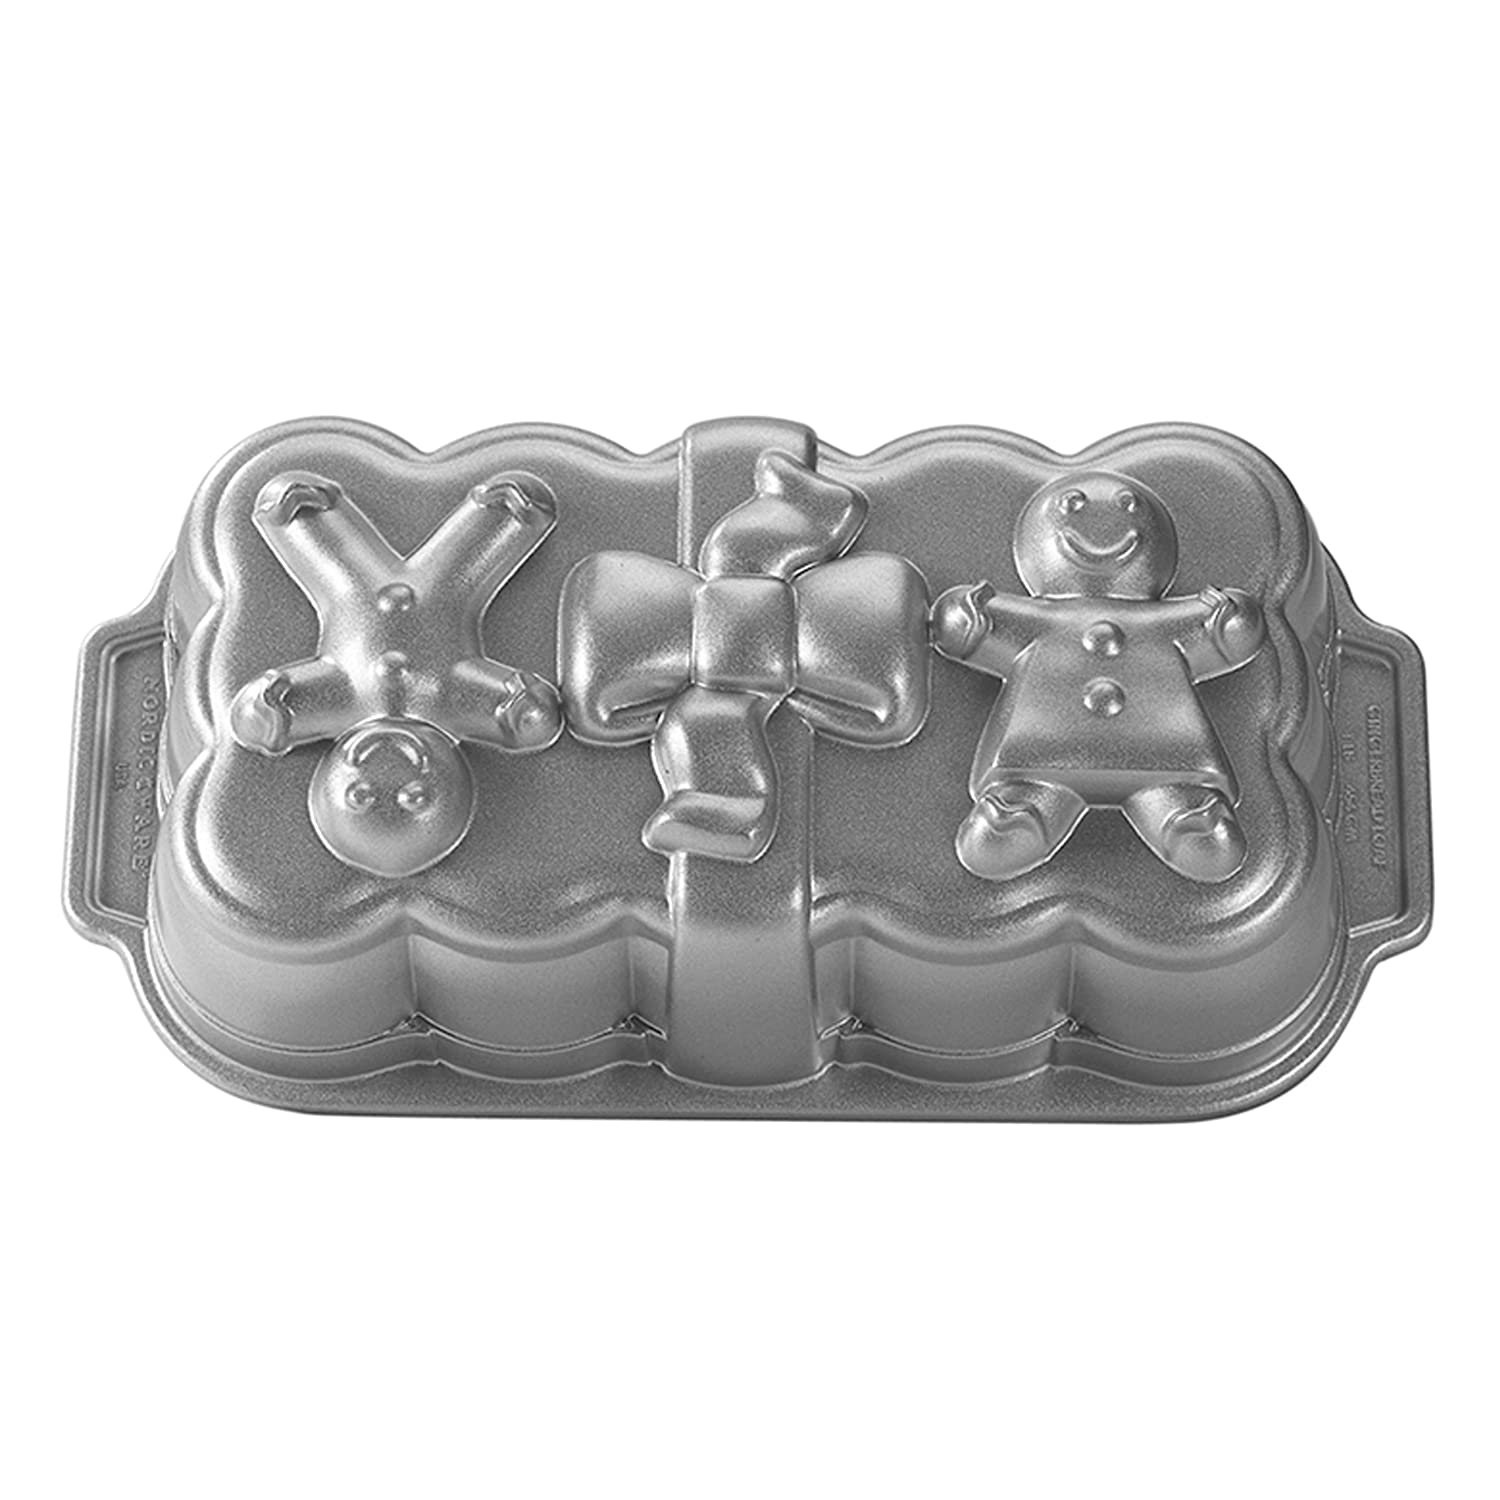 Nordic Ware Gingerbread Loaf Pan 56948